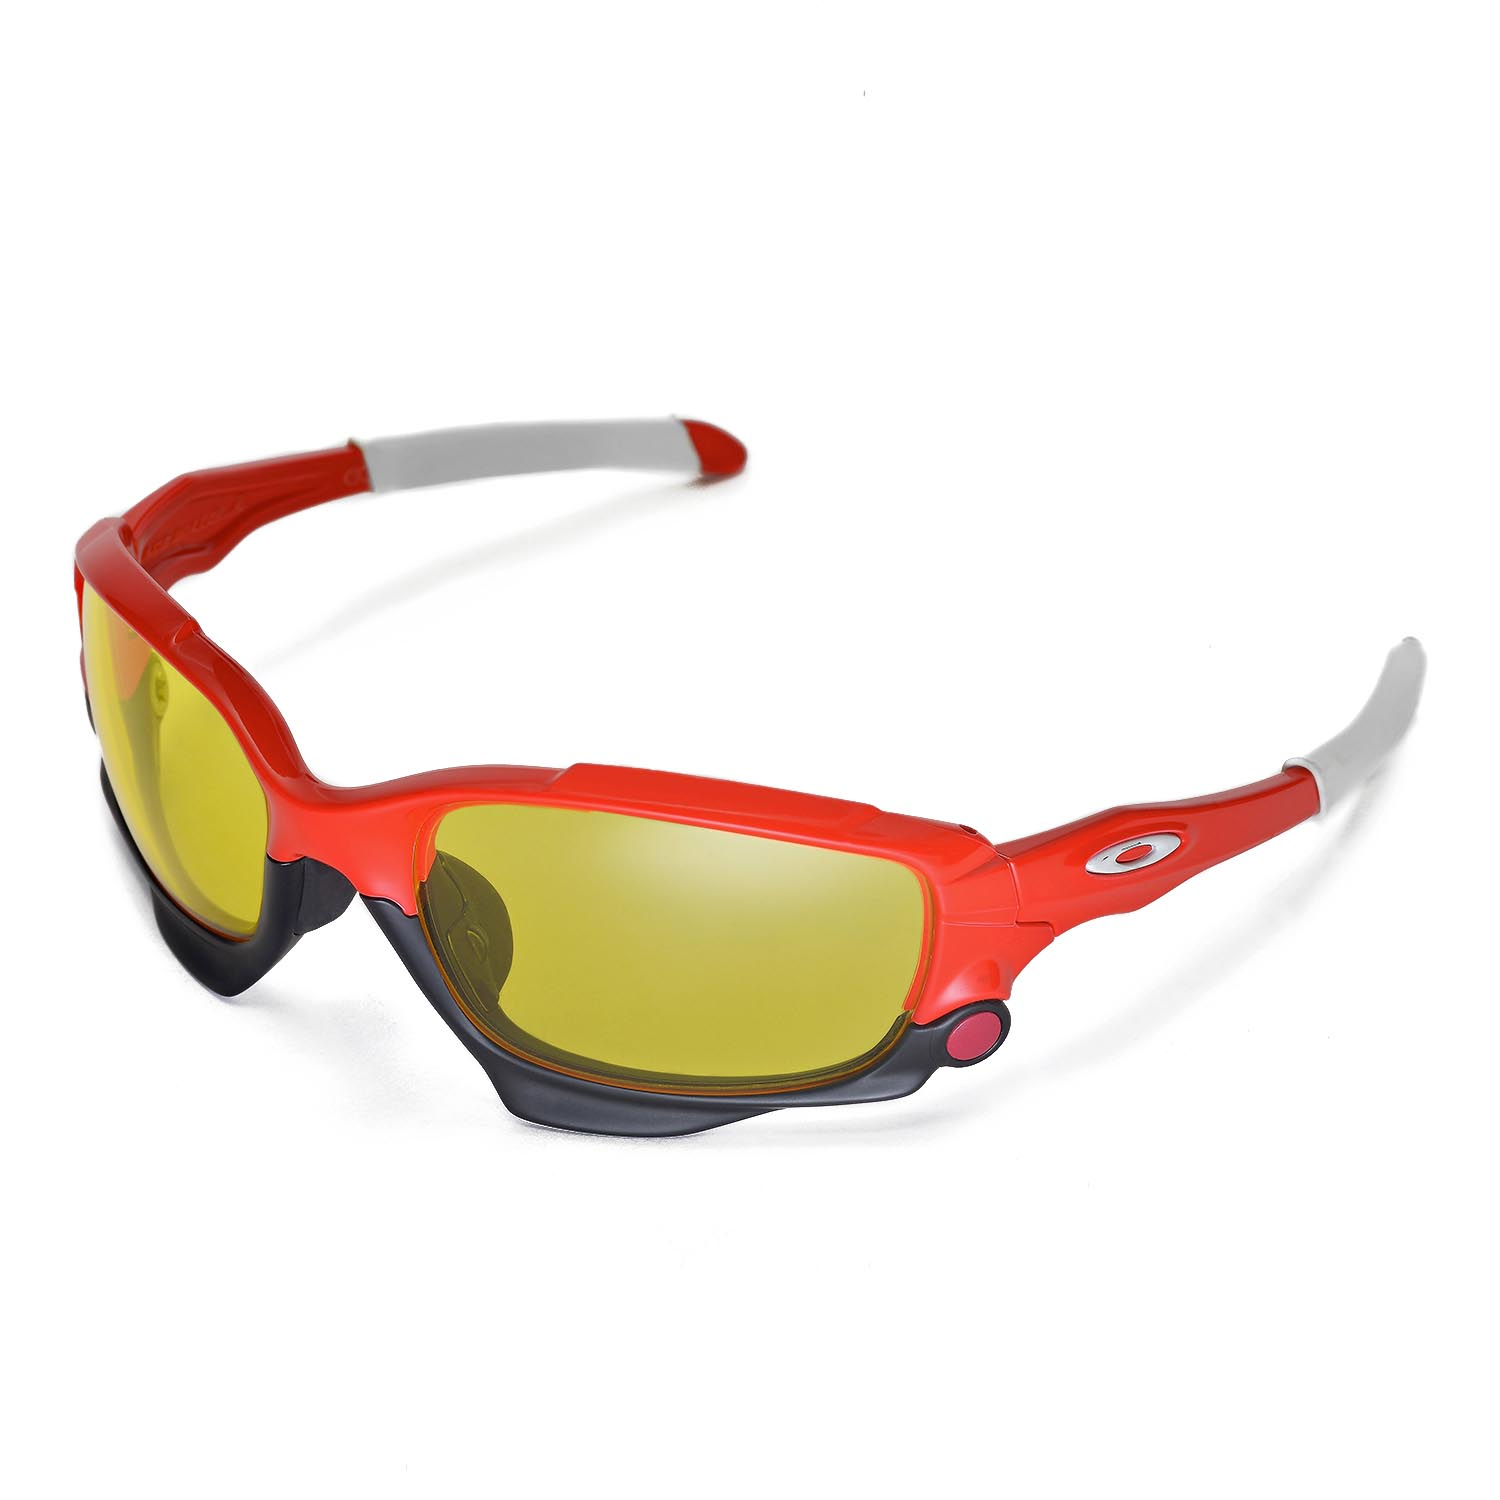 88230e136d Details about New Walleva Yellow Replacement Lenses For Oakley Racing  Jacket Sunglasses